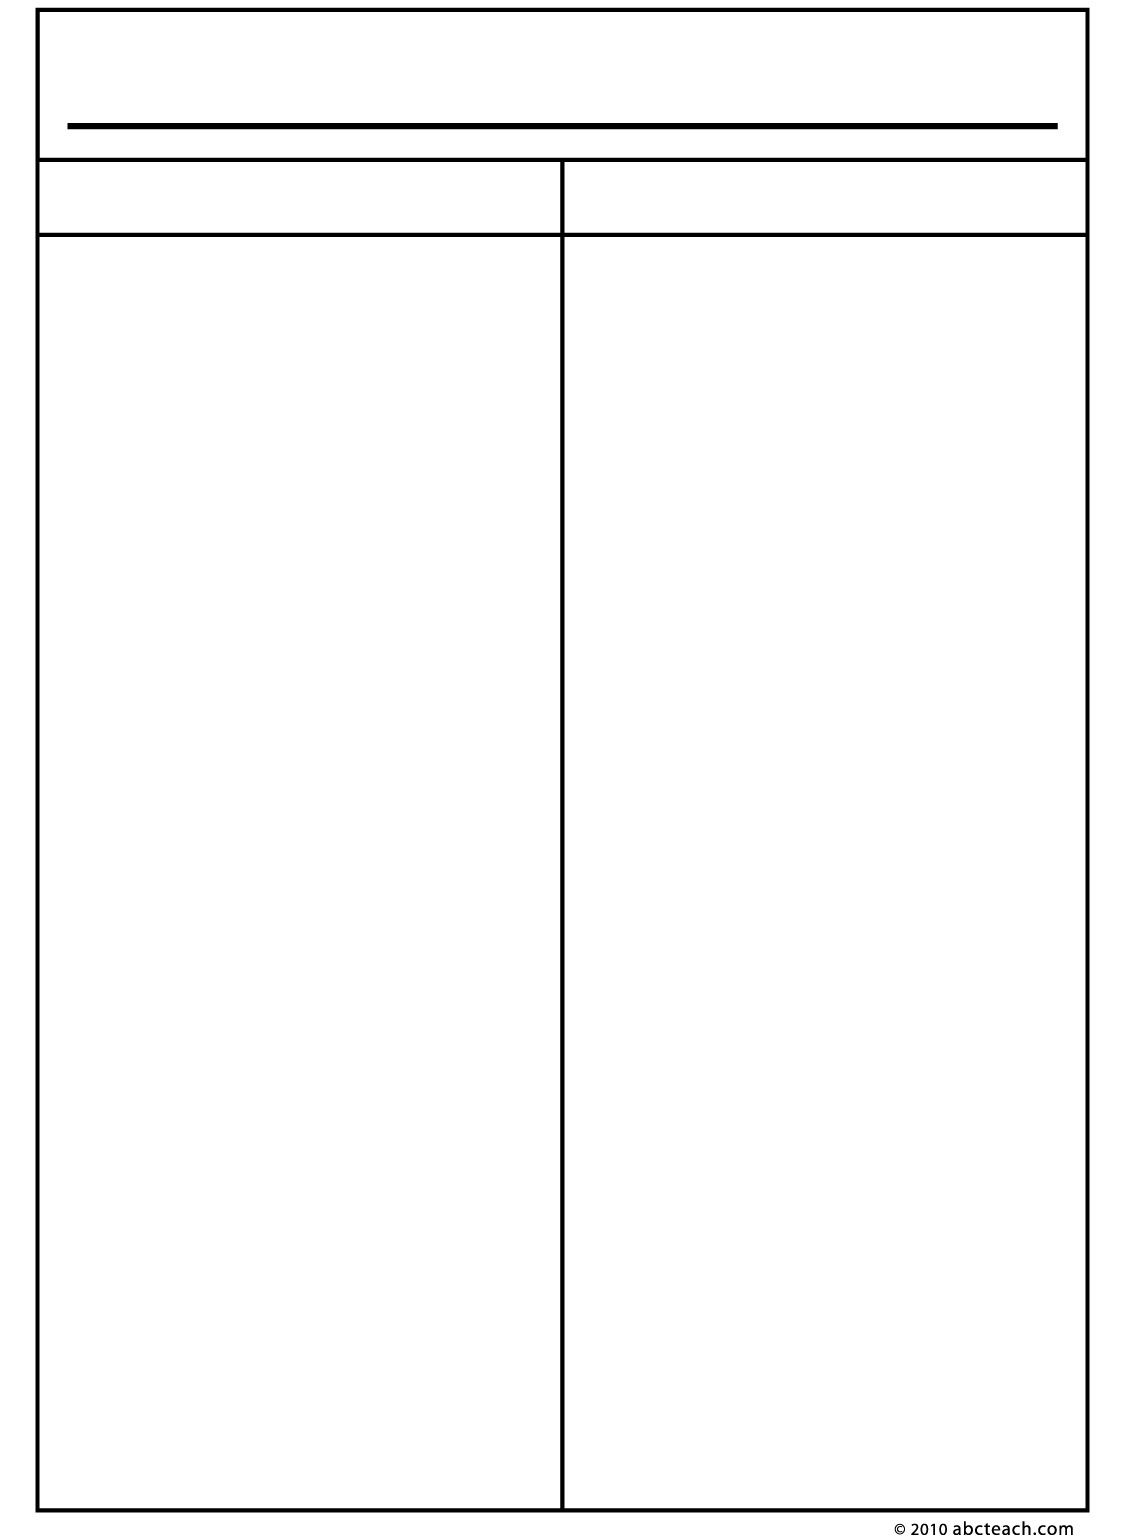 Graphic Organizers Printable graphic organizers – Free Printable T Chart